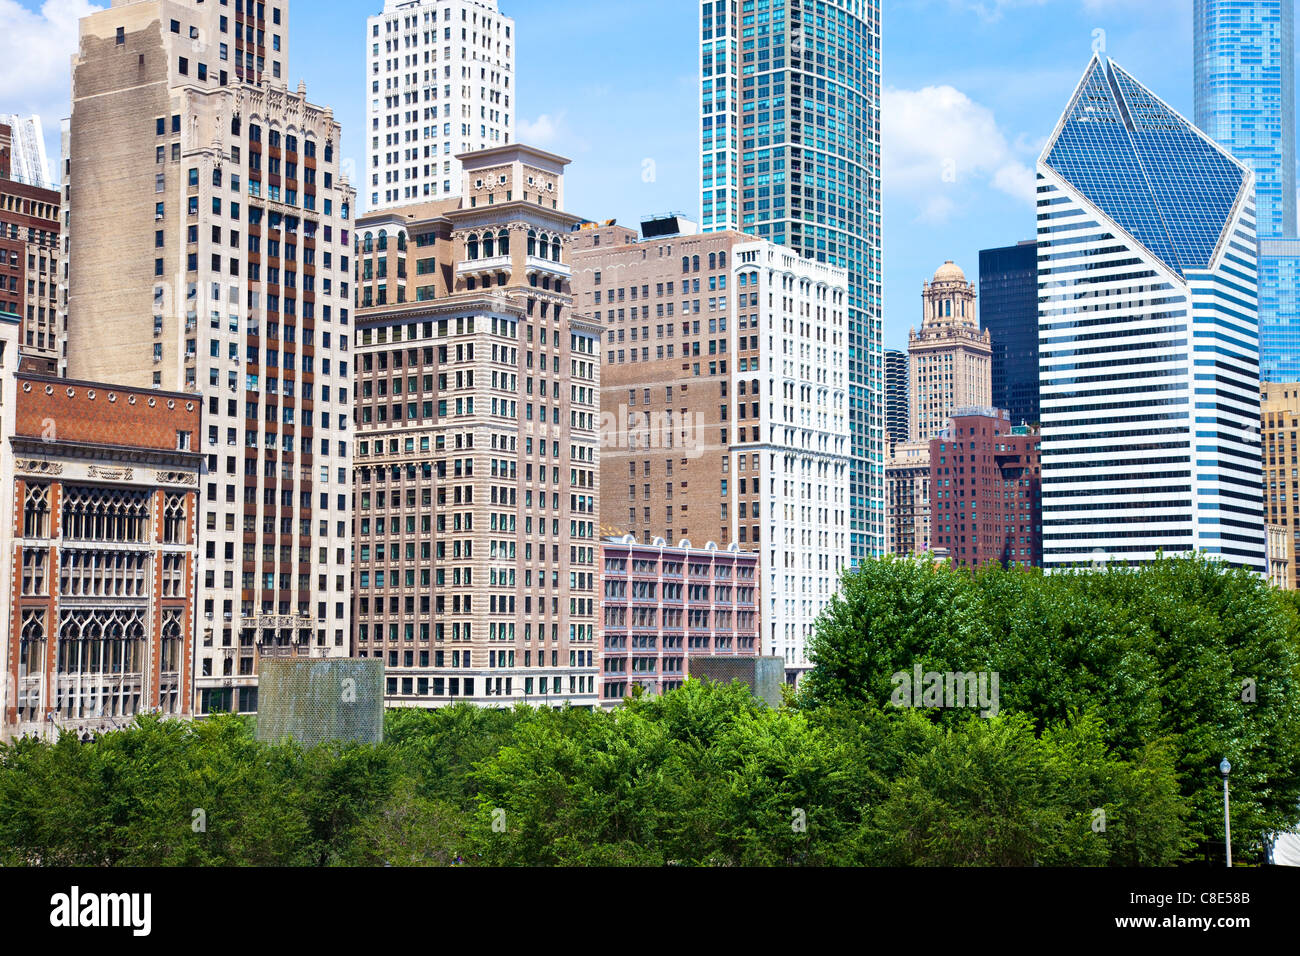 Skyline, Chicago, Illinois - Stock Image